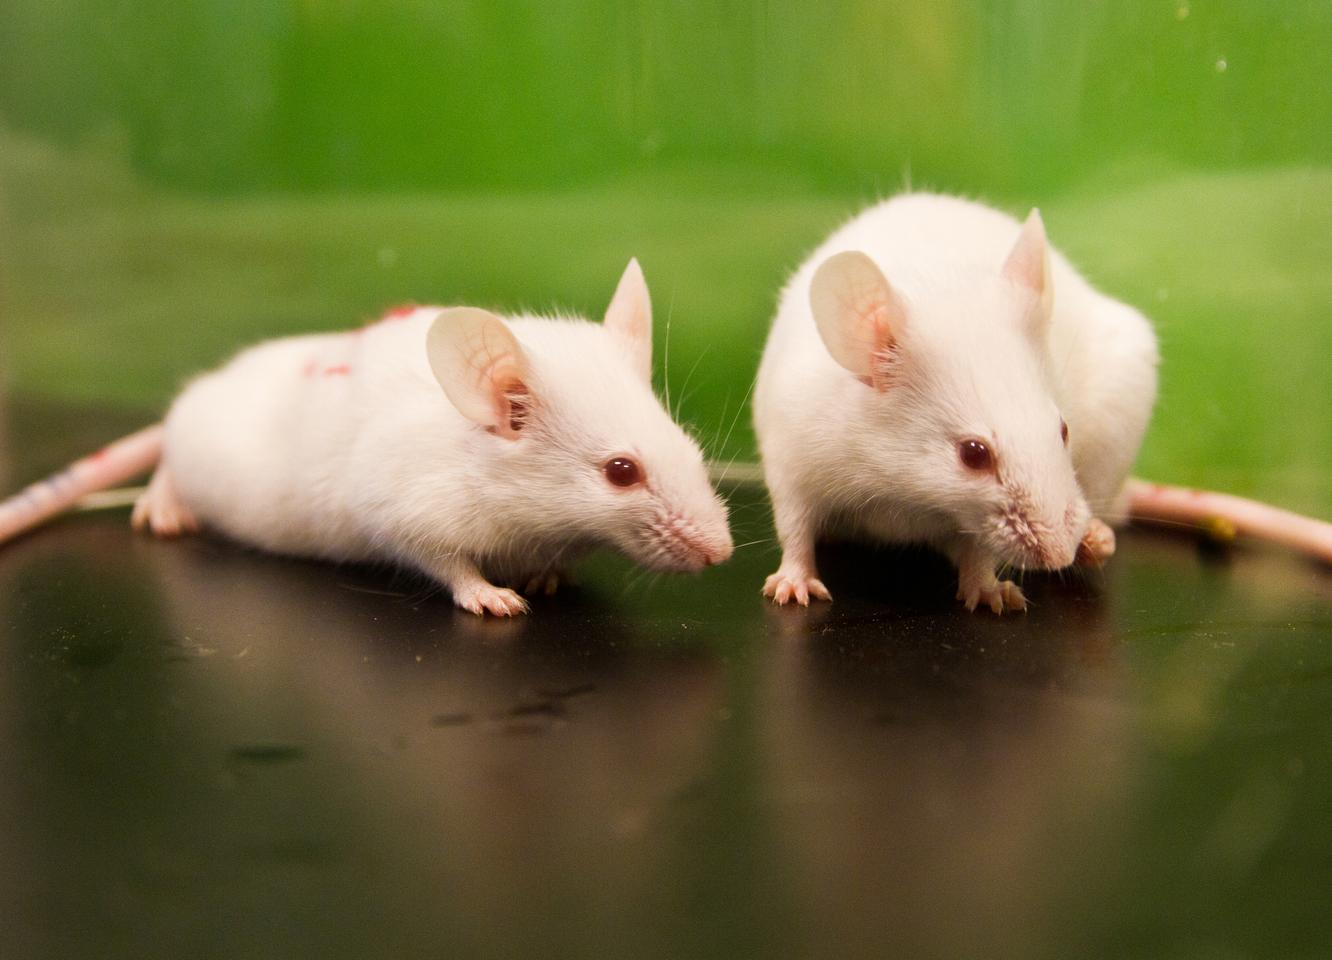 Research has found mice lacking certain gut bacteria displayed antisocial behaviors and high levels of a stress hormone